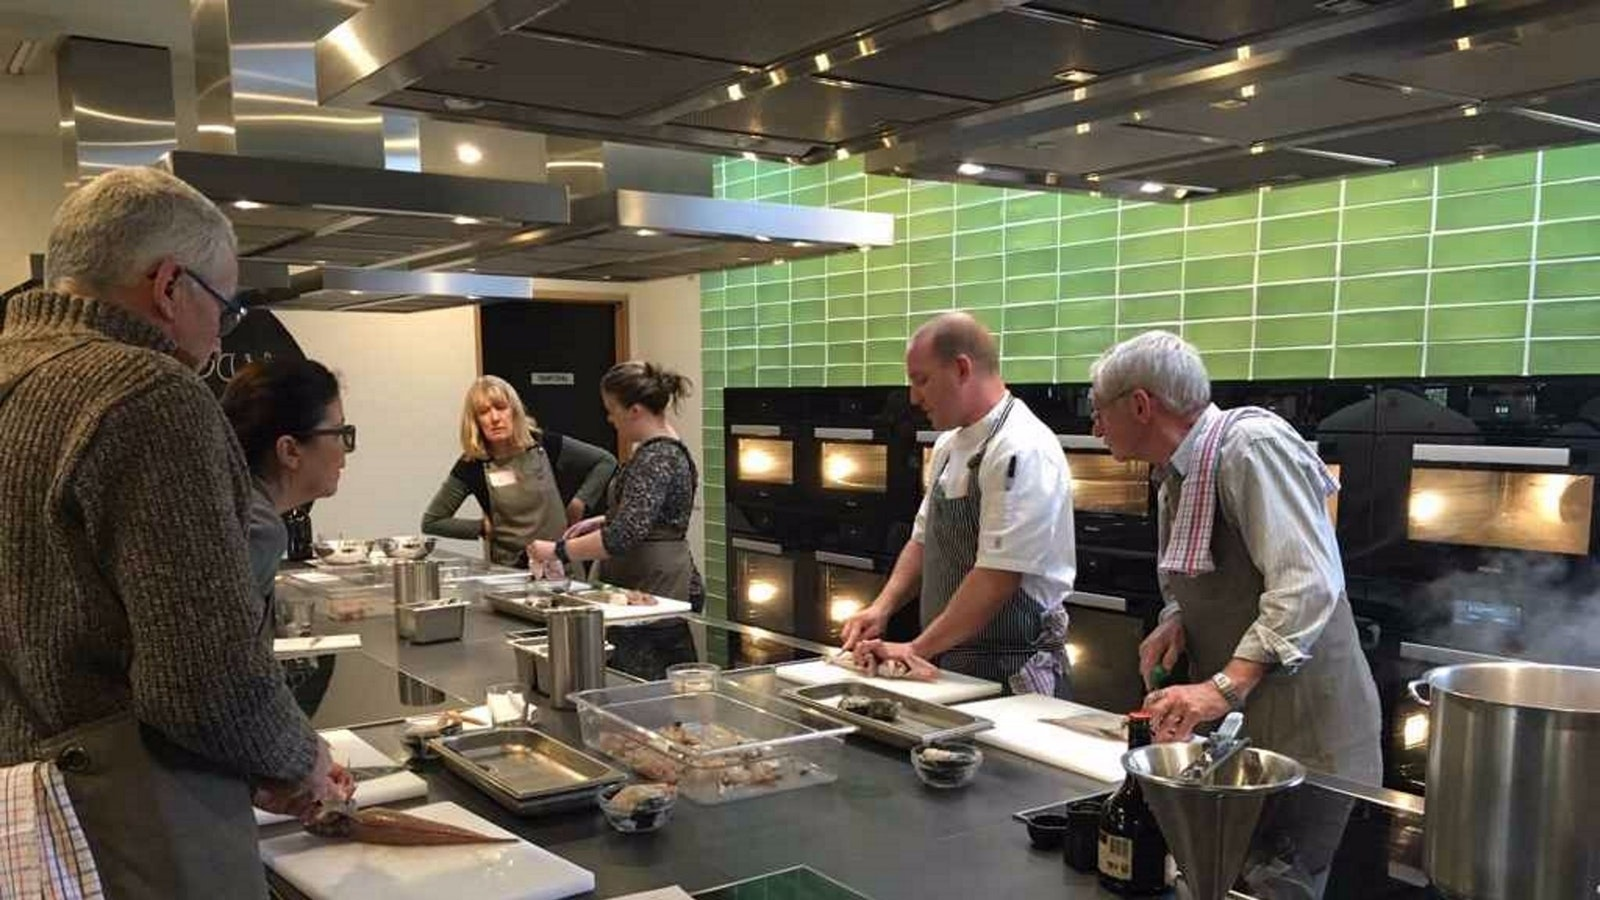 Everyone can have a go, even at filleting fish